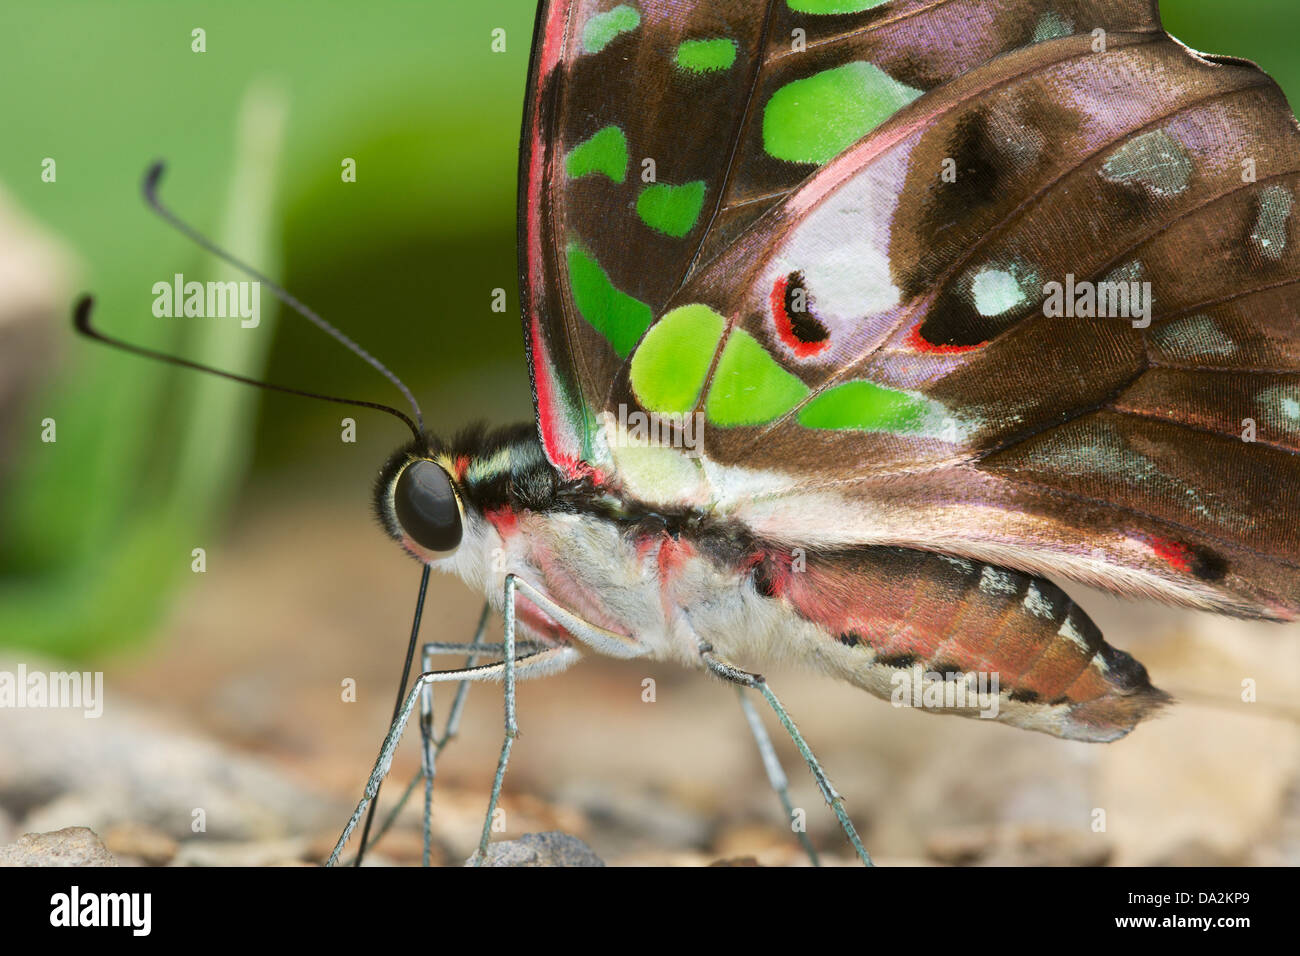 The Tailed Jay (Graphium agamemnon) is a predominantly green and black tropical butterfly - Stock Image